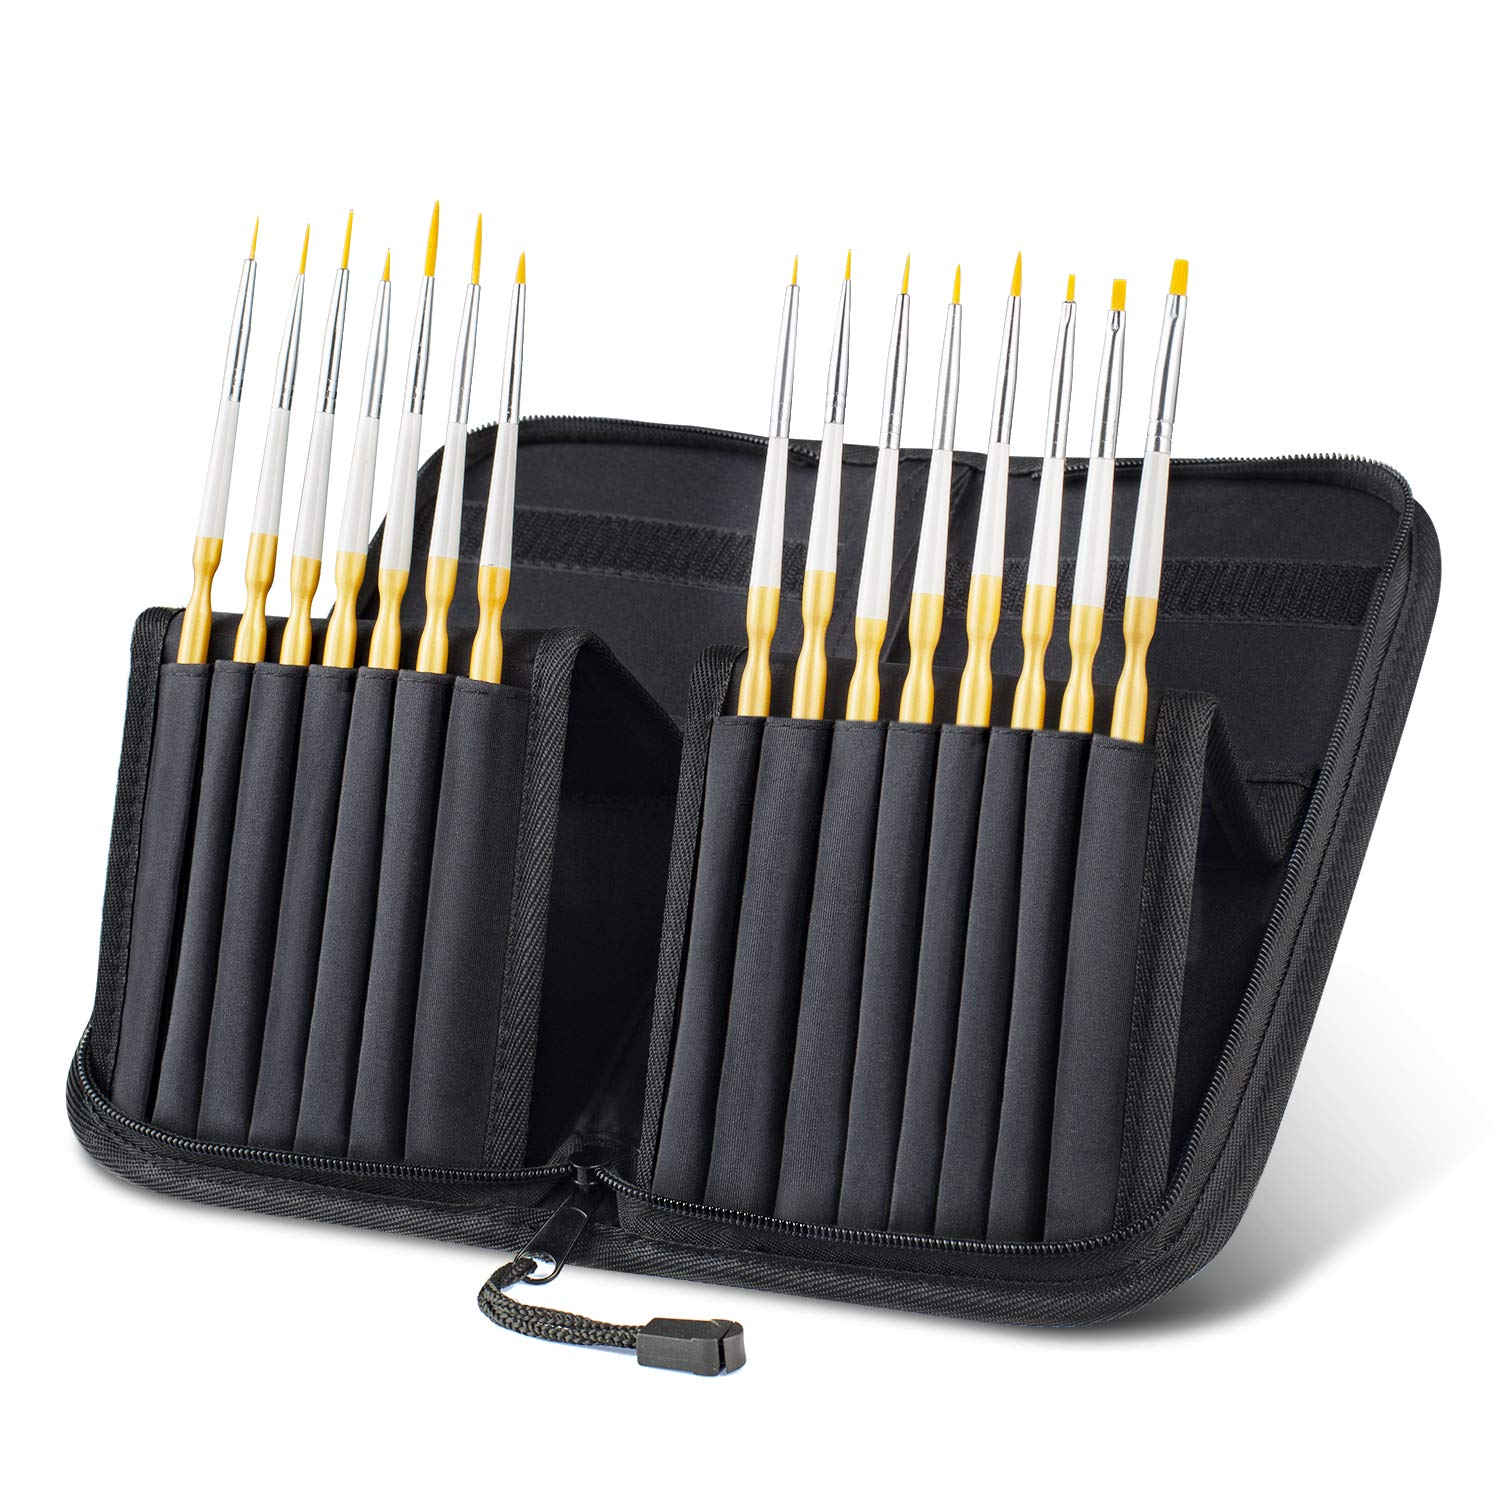 70% off Tdbest Paint Brush Set,15 Pcs Acrylic Paint Brushes Handmade Round Pointed Tip Nylon Hair Brushes